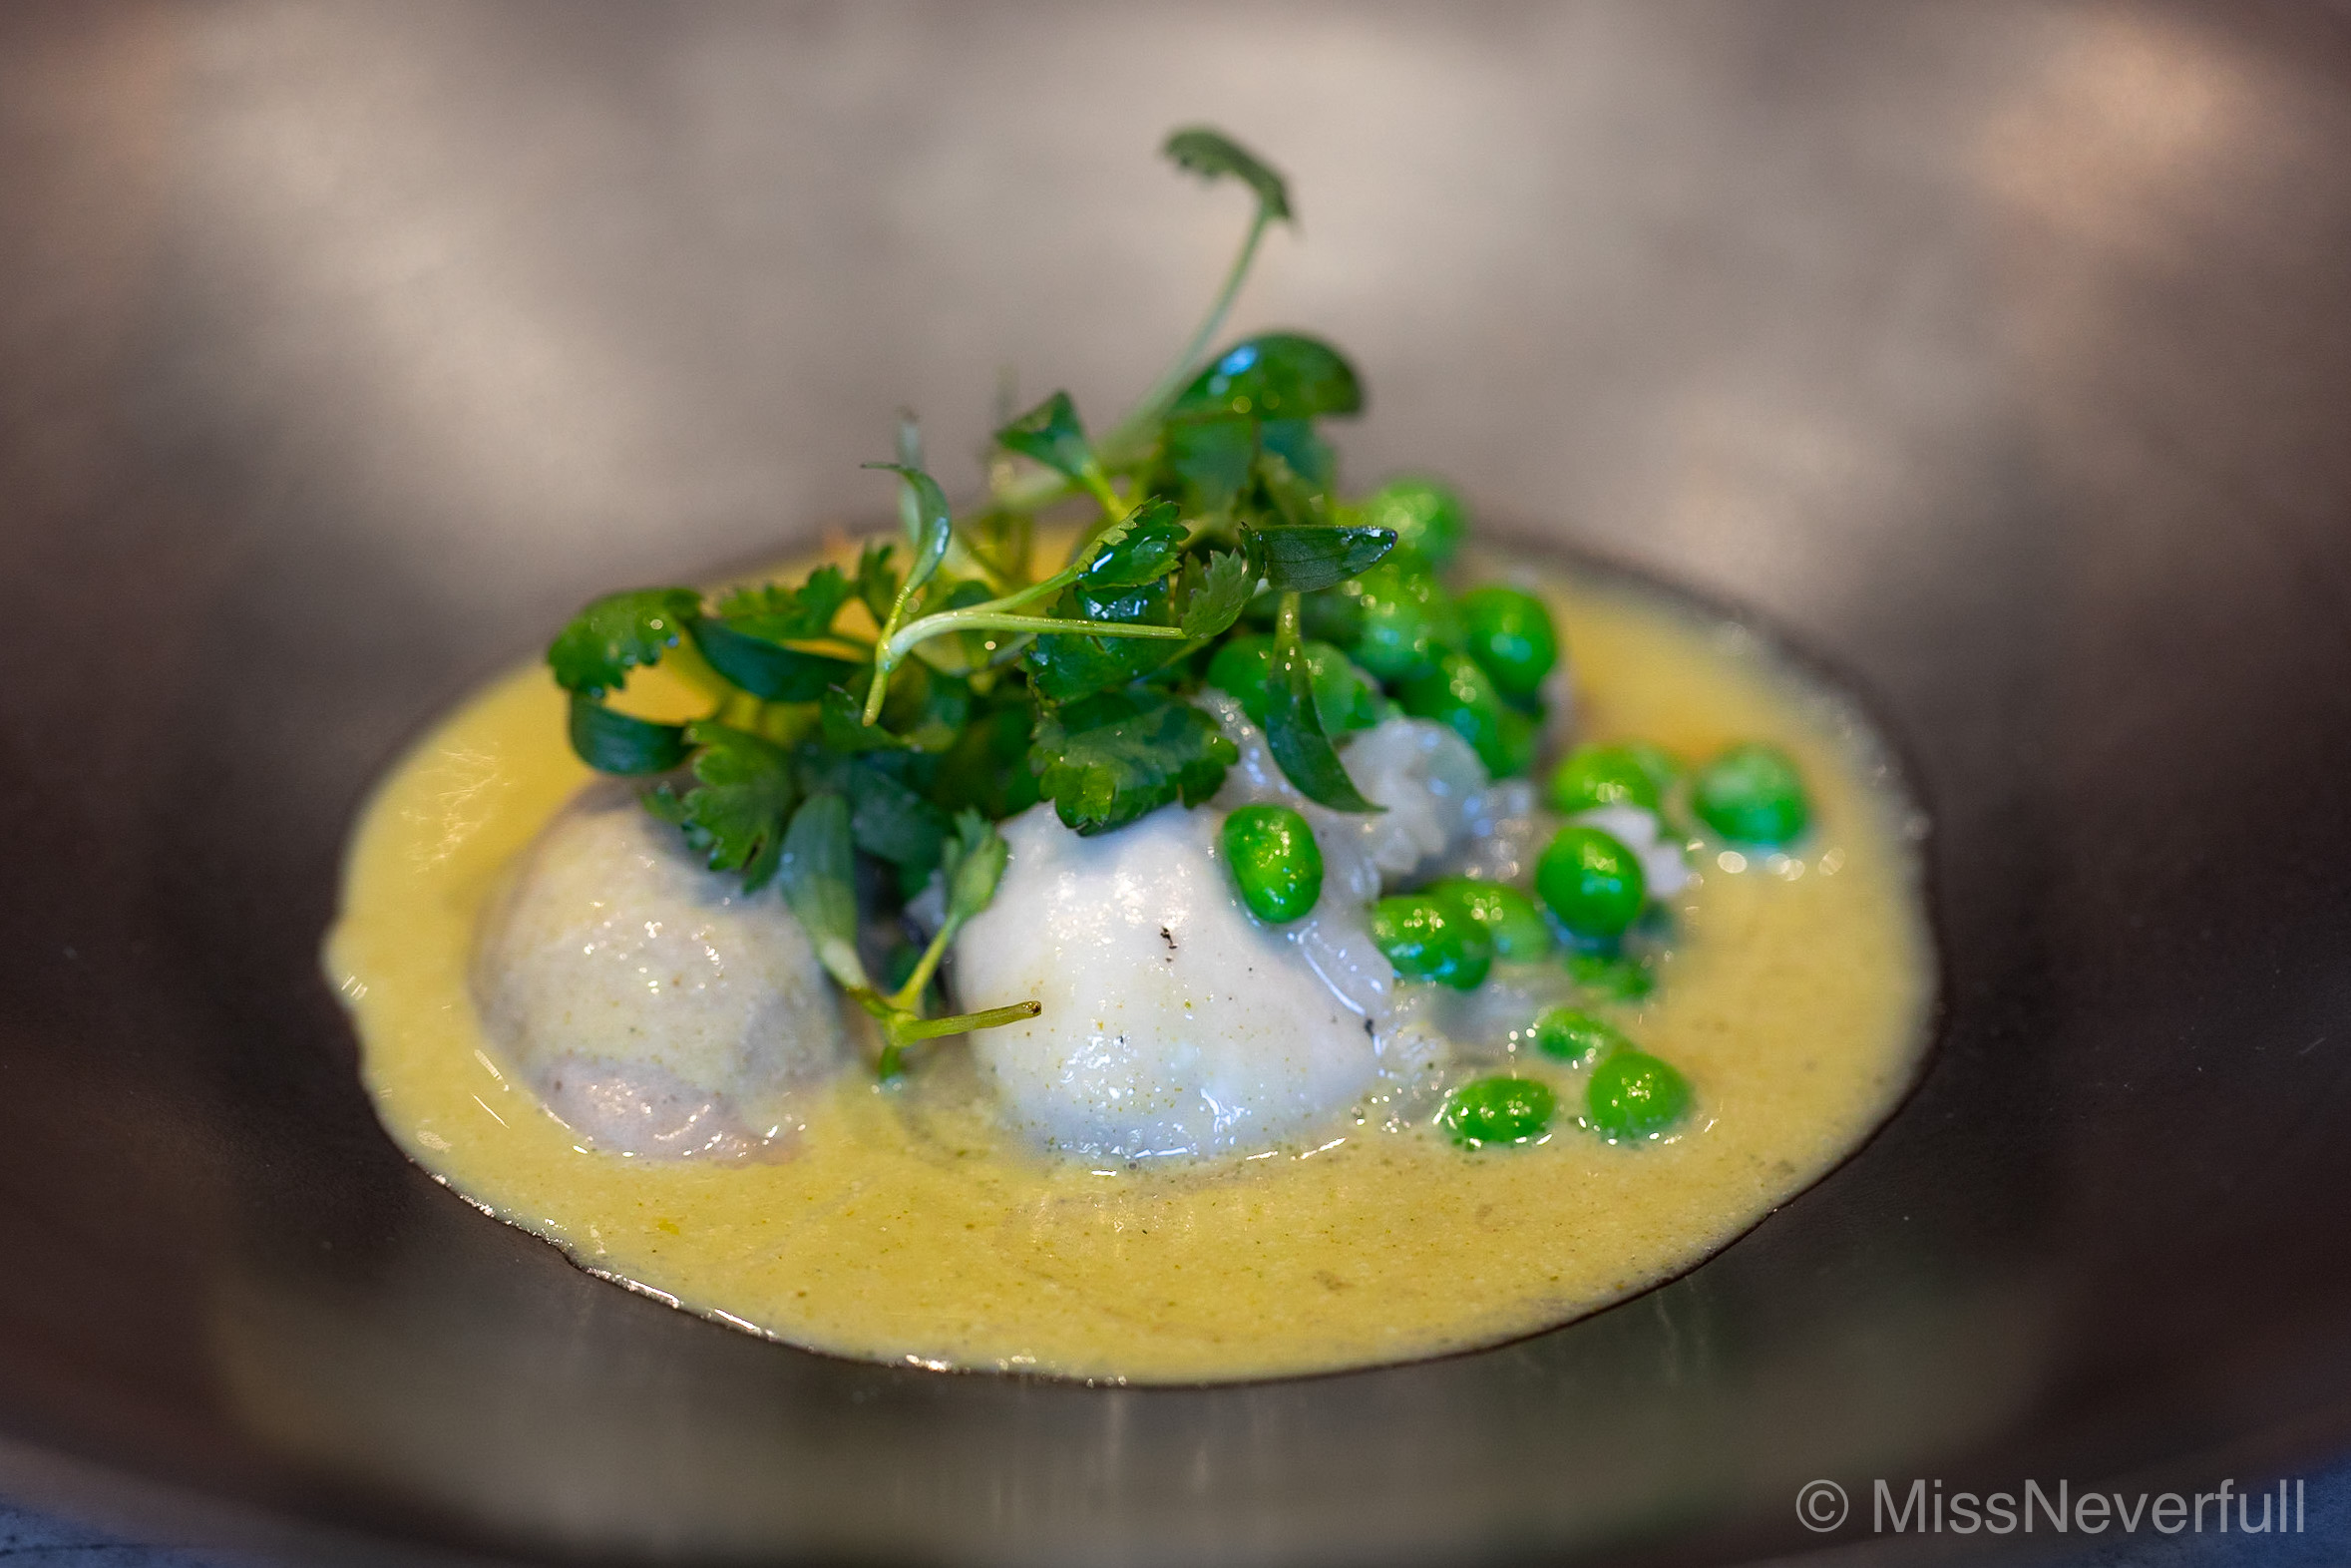 4.Oyster & snap peas